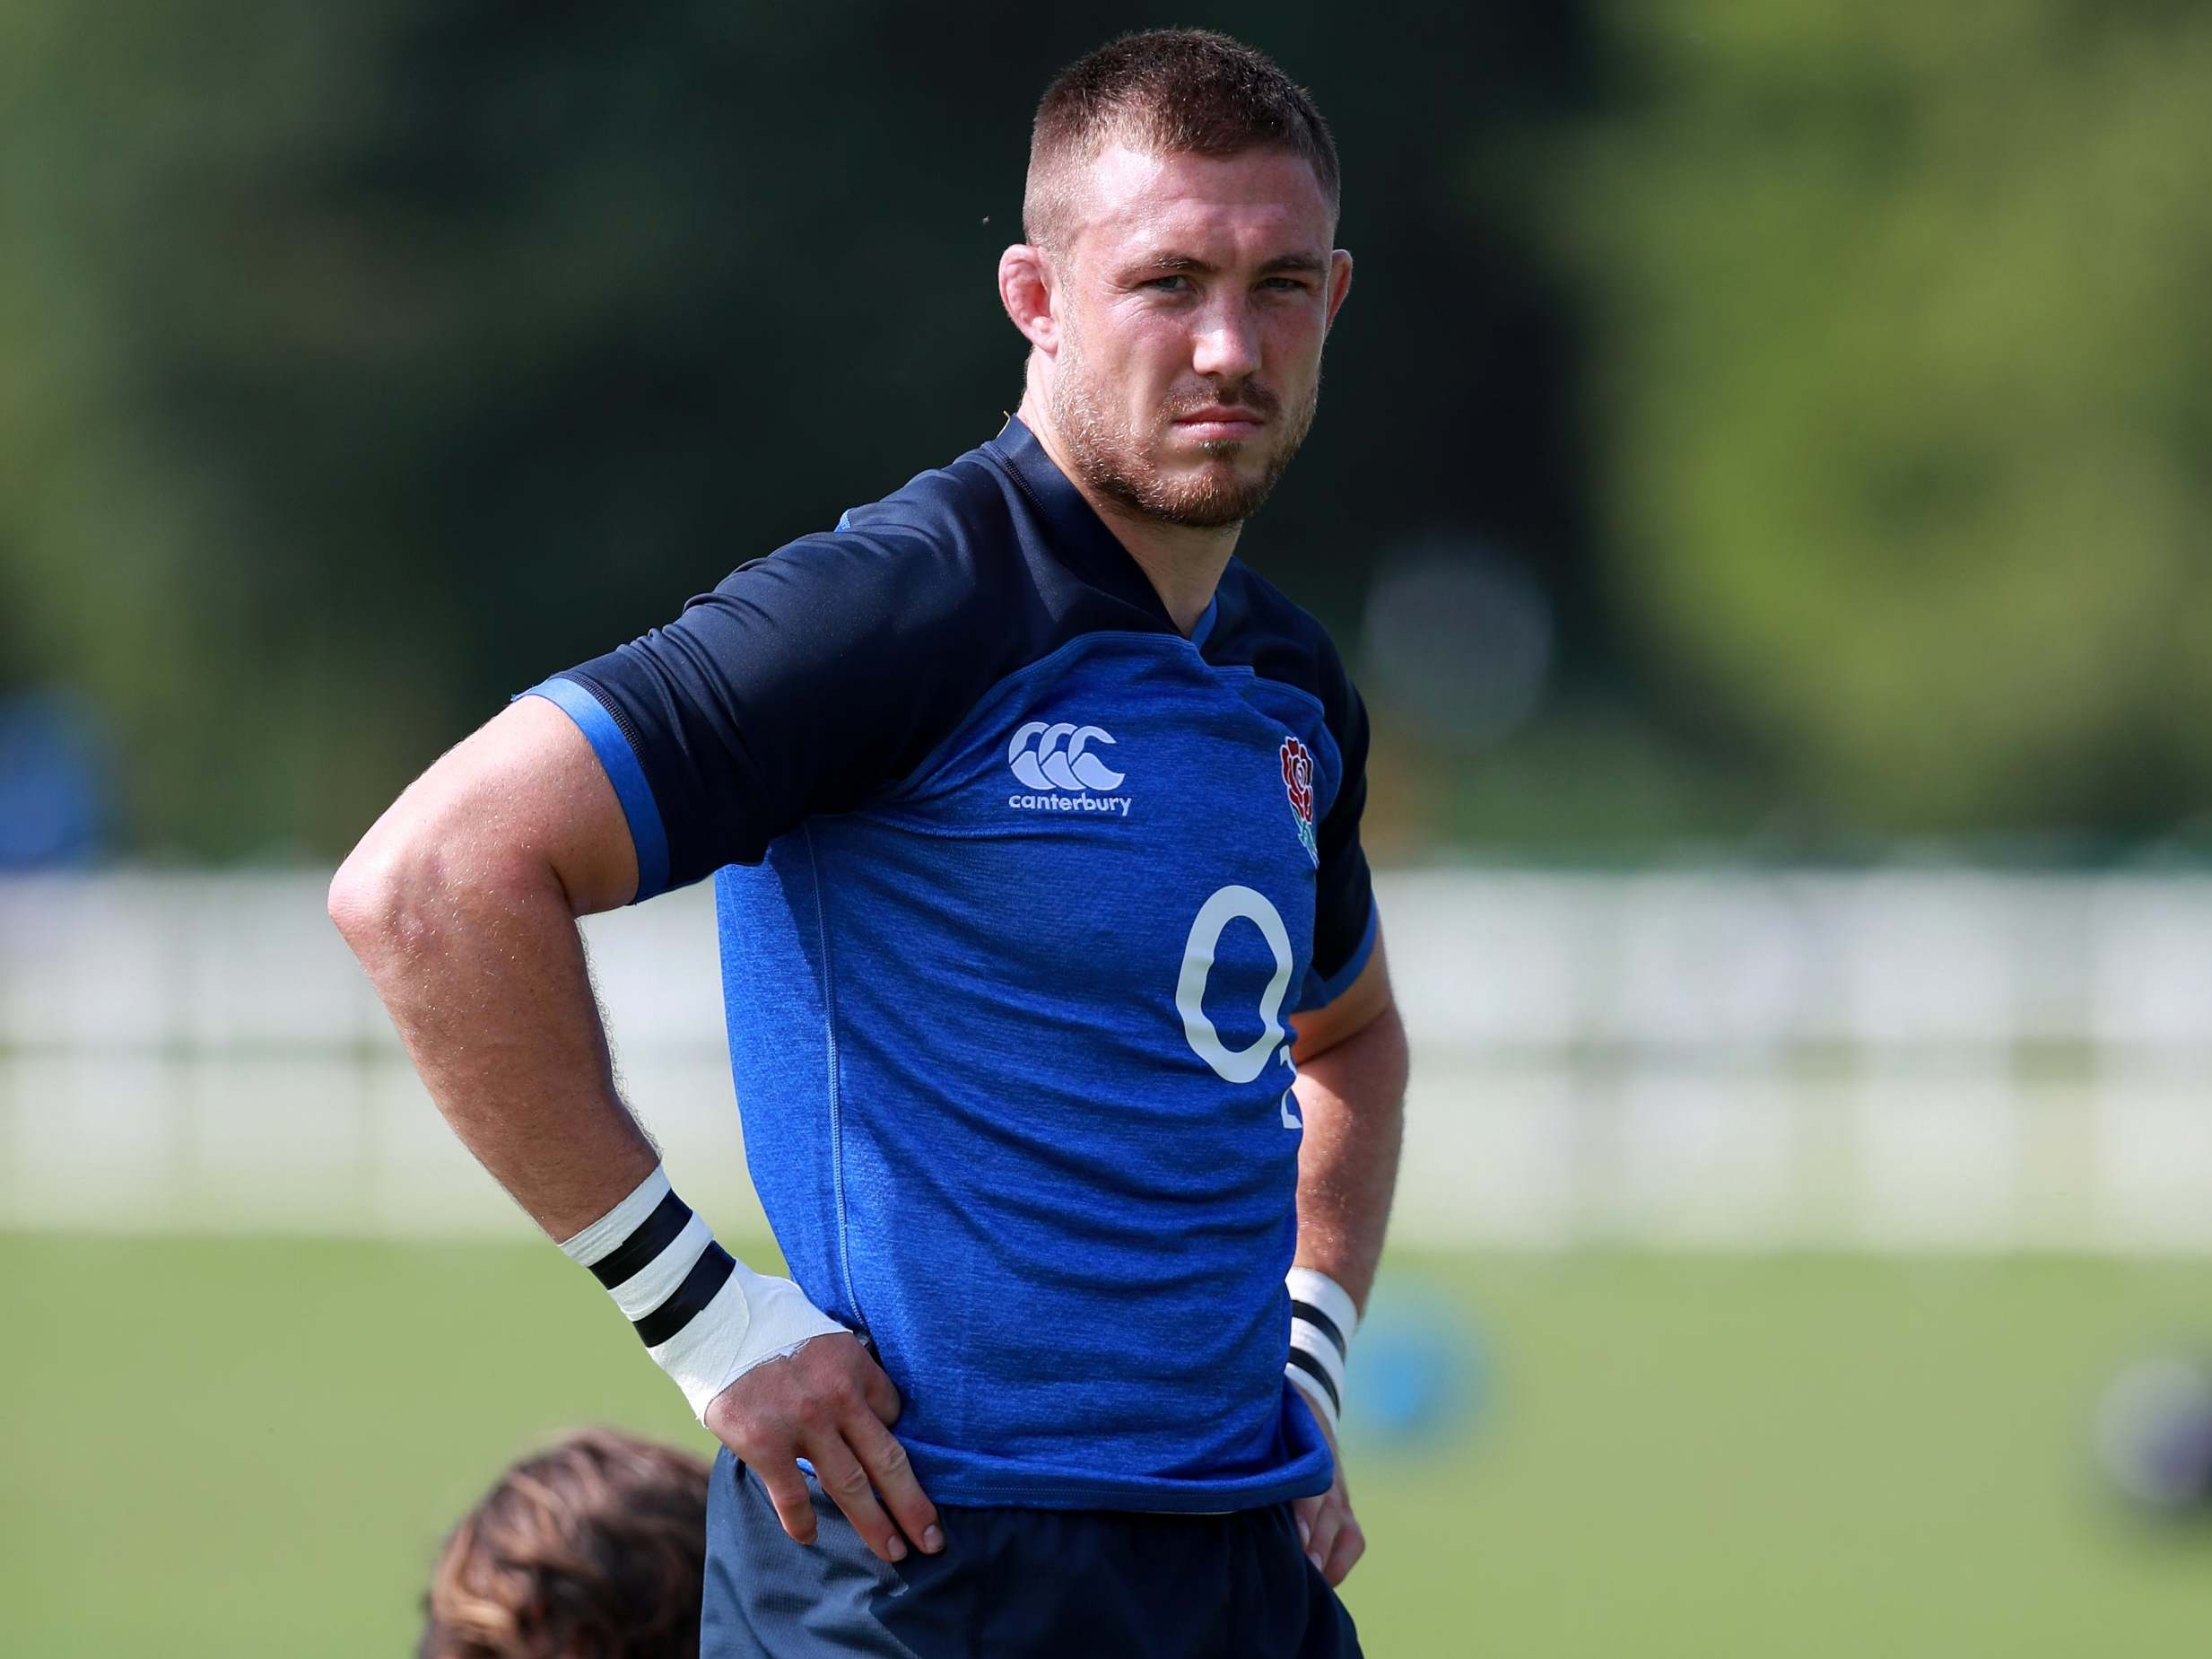 Rugby World Cup 2019: Mike Brown has 'no regrets' despite missing out on England squad